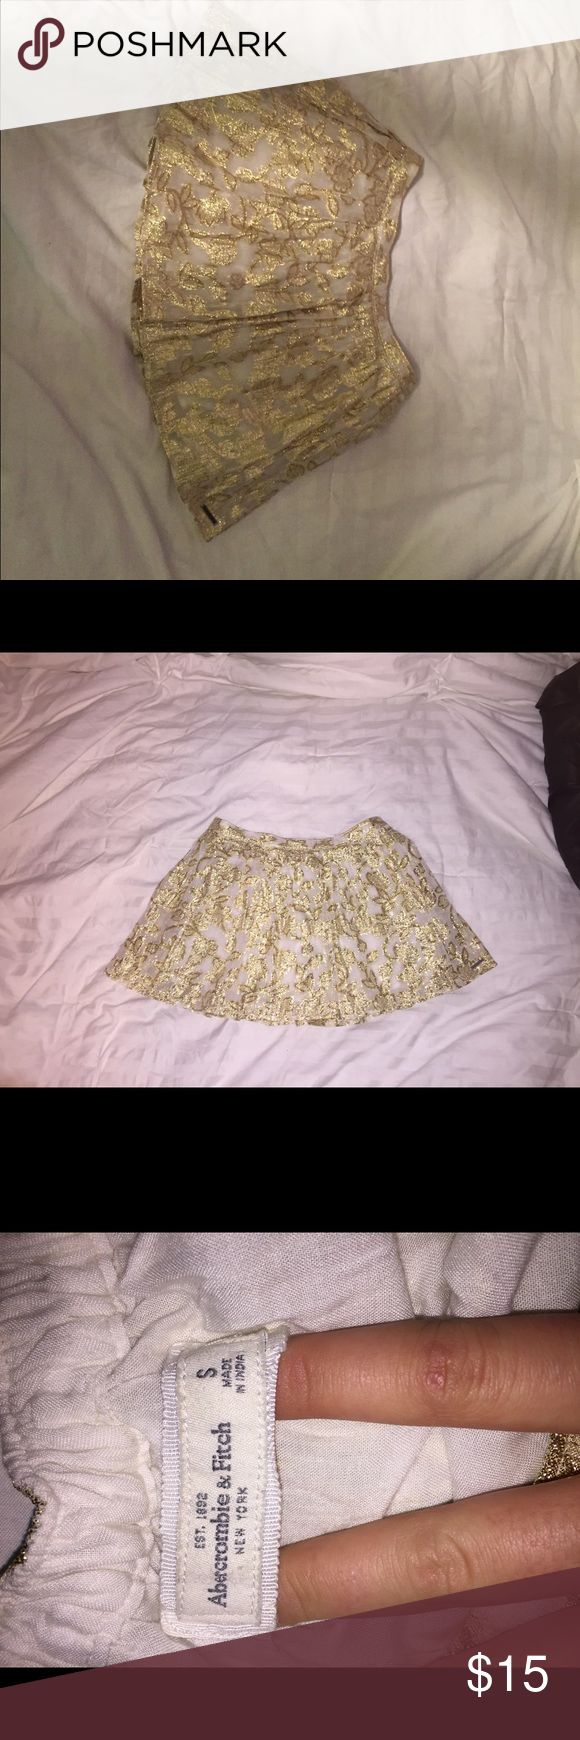 NWT ABERCROMBIE AND FITCH SKIRT SZ SMALL NWT ABERCROMBIE AND FITCH SKIRT SZ SMALL Abercrombie & Fitch Skirts Mini